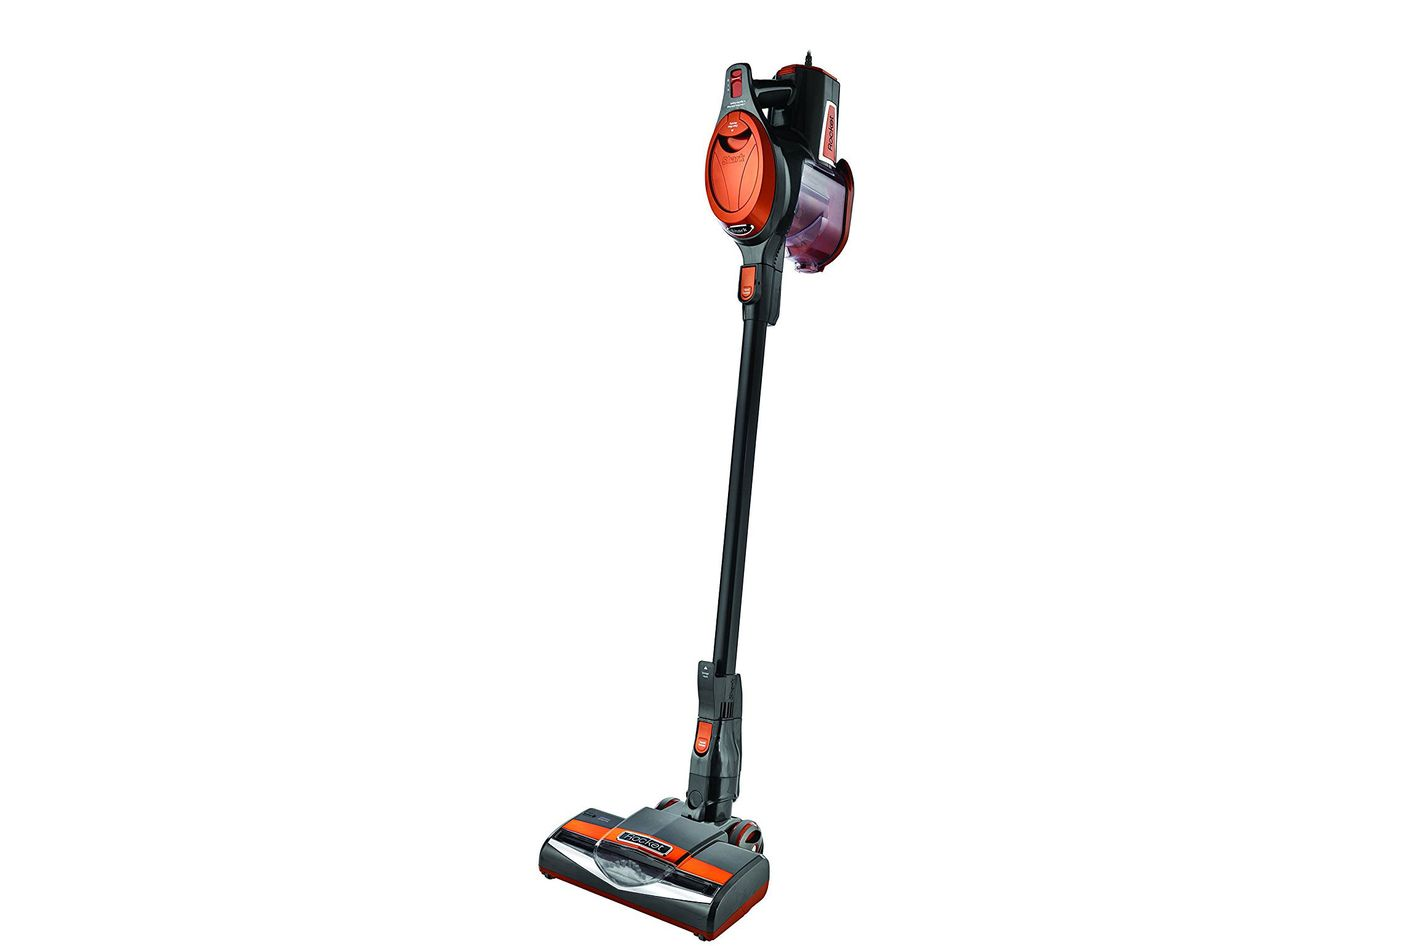 Shark Rocket HV302 Ultra-Light Upright Vacuum